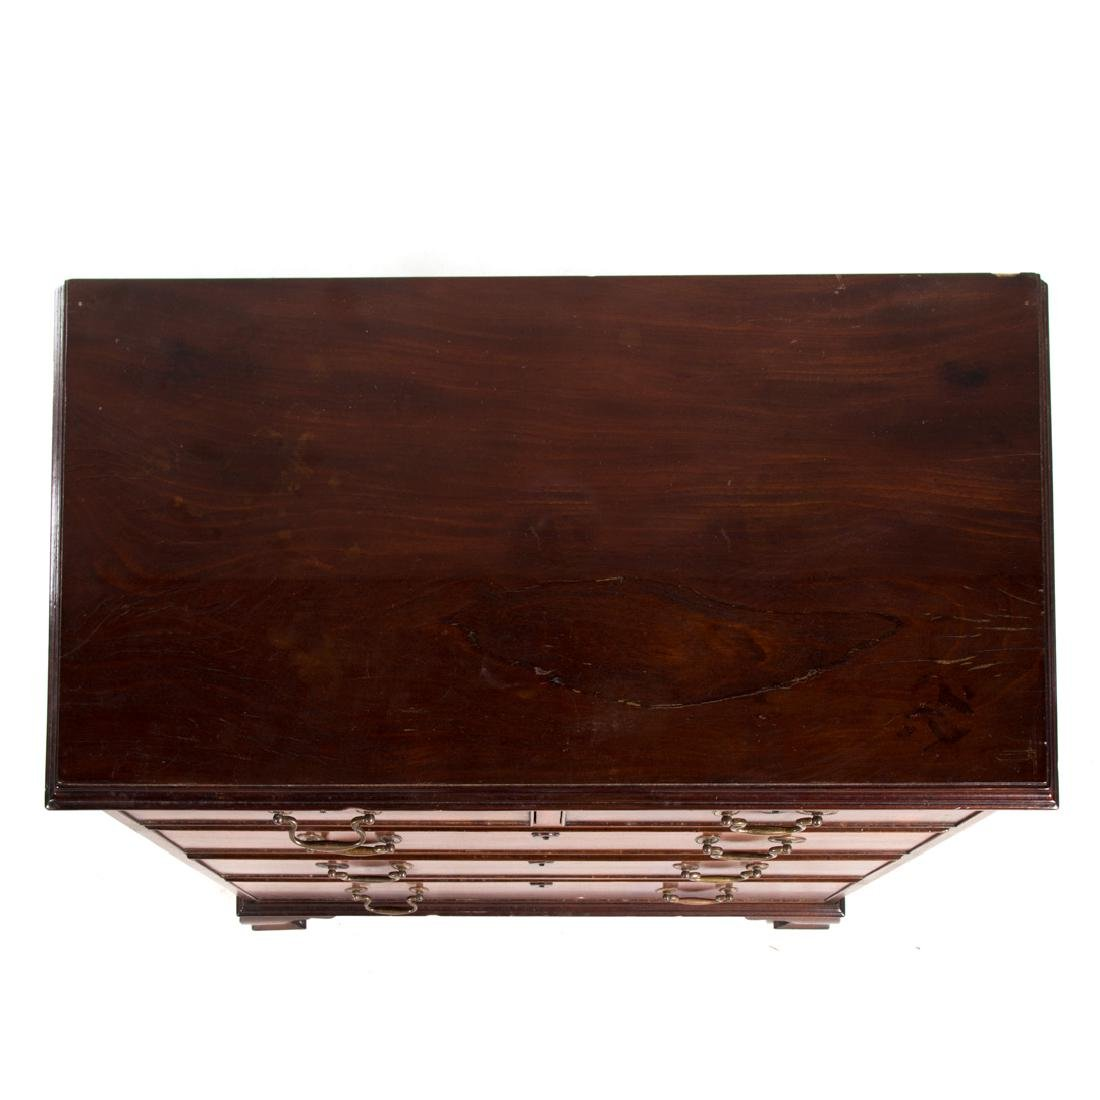 George III style mahogany bachelor's chest - 2